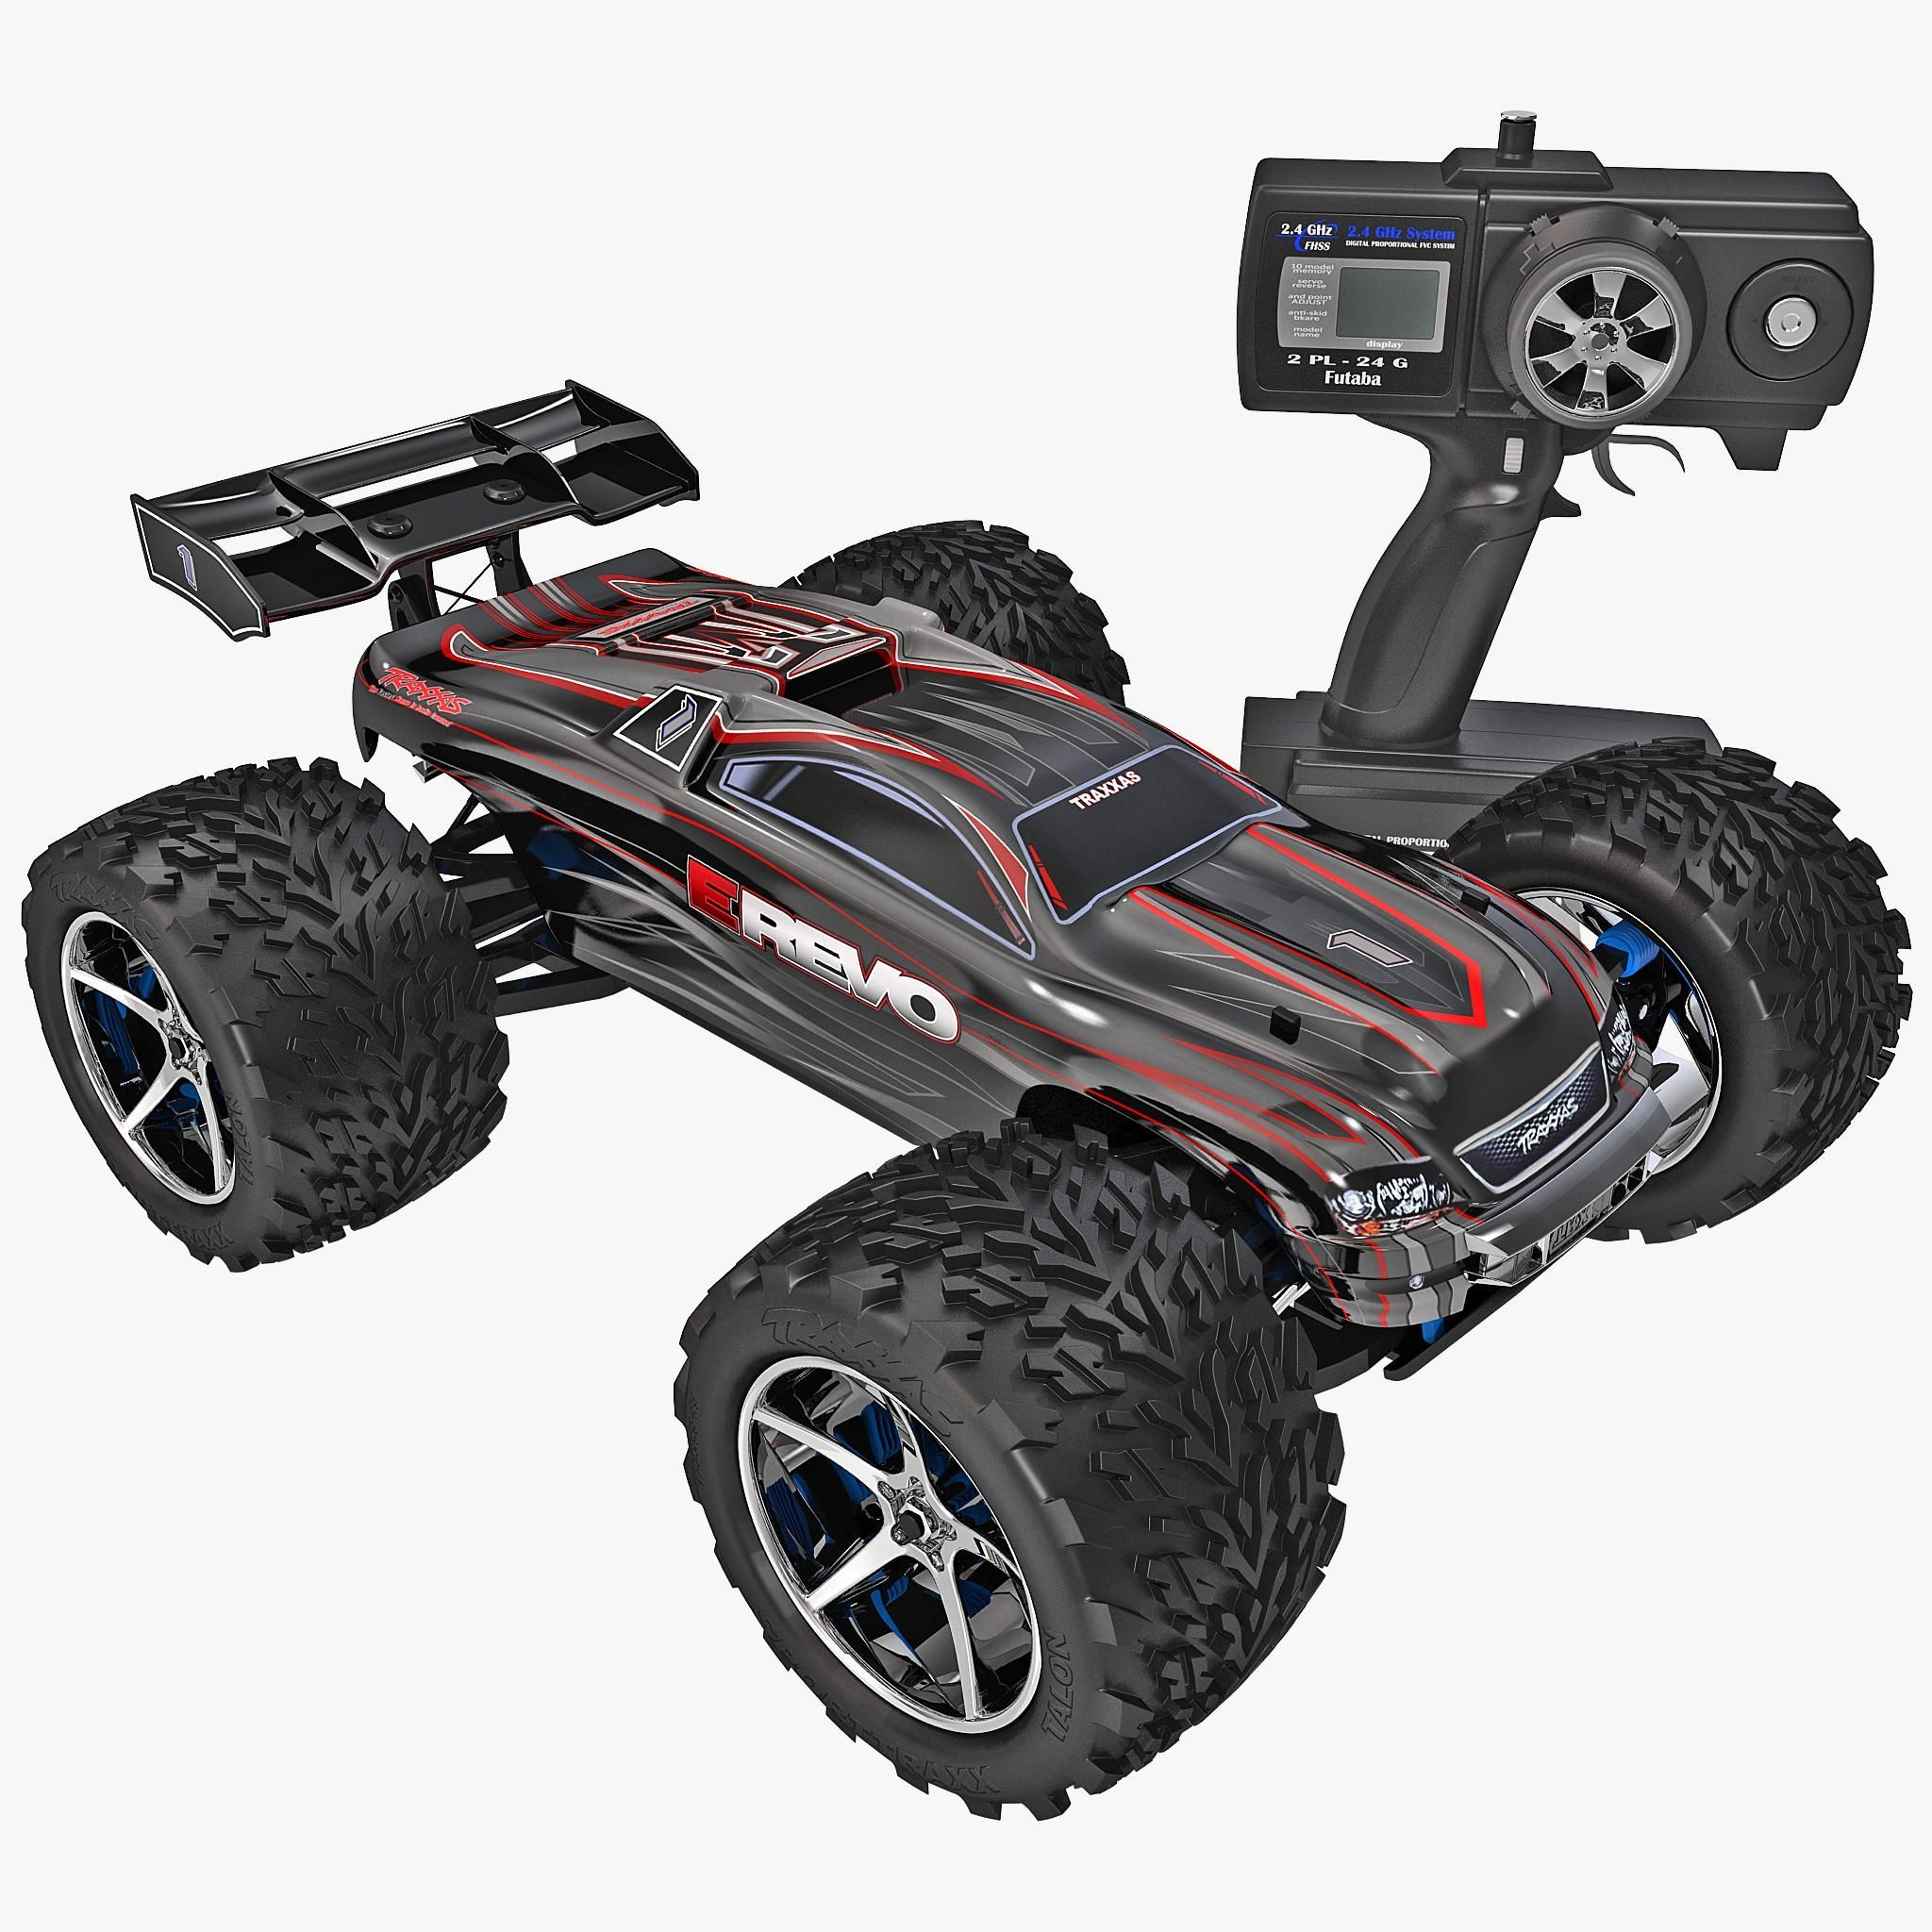 Traxxas Stampede 4X4 1/10 Scale 4wd Monster Truck with TQ